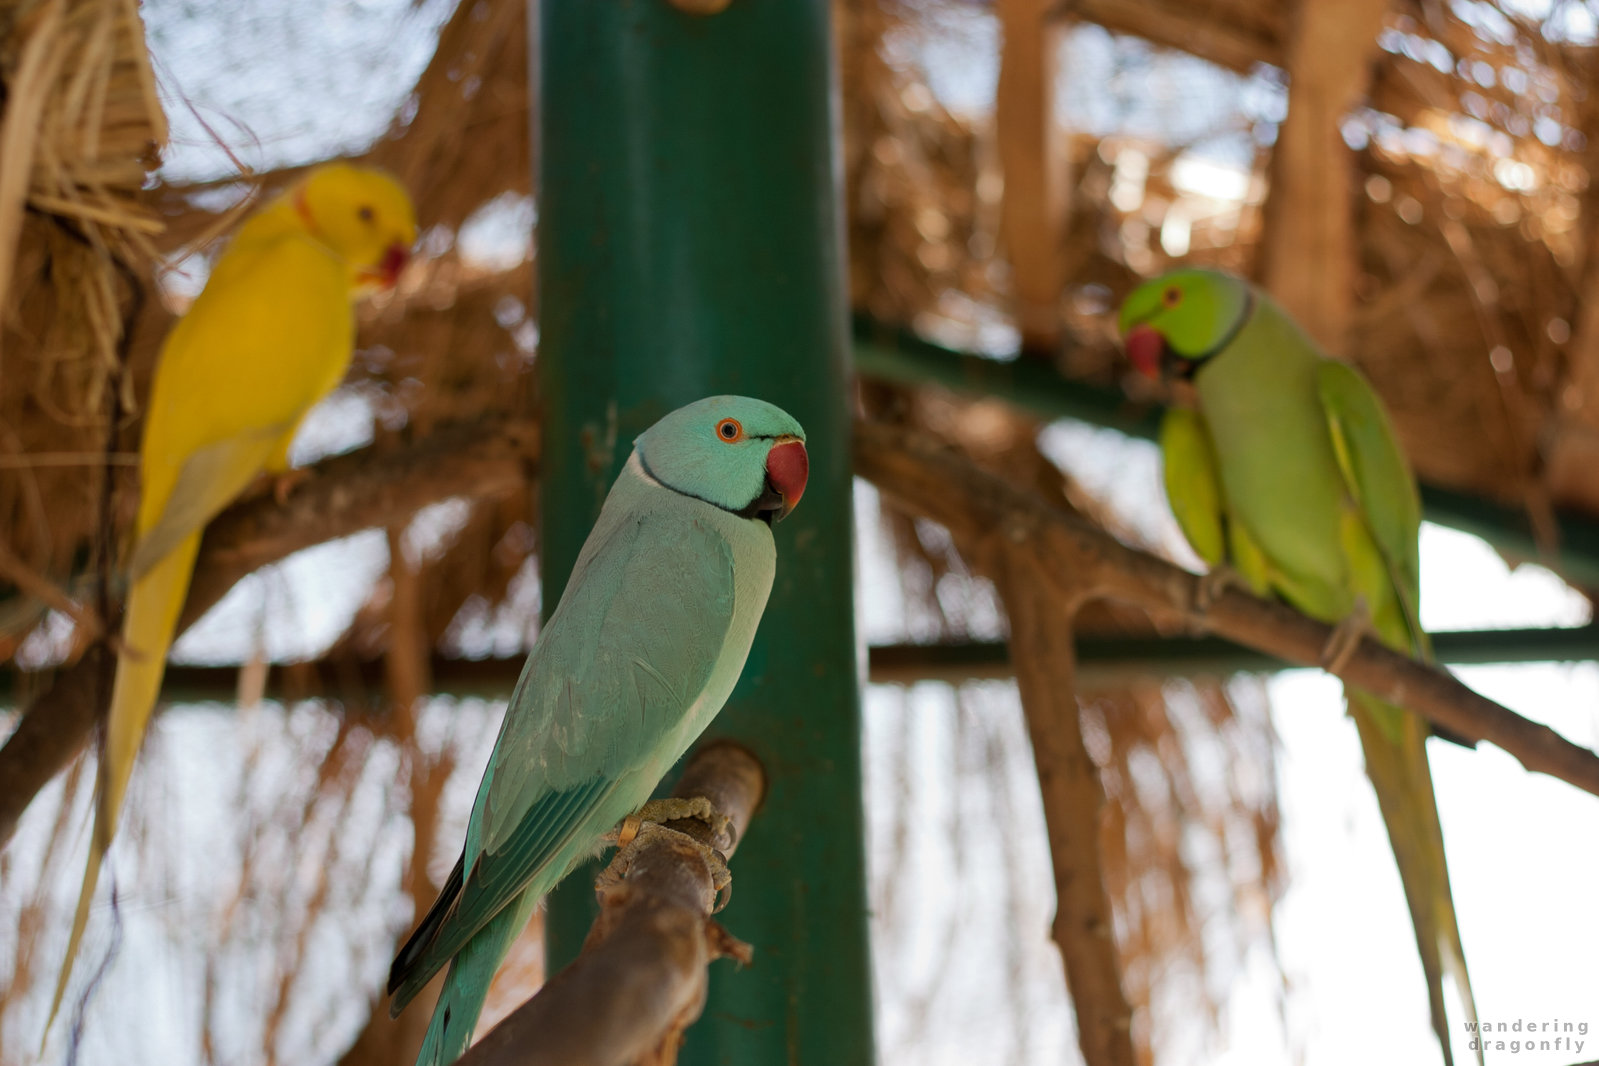 Three parrots -- cyan parrot, green parrot, yellow parrot